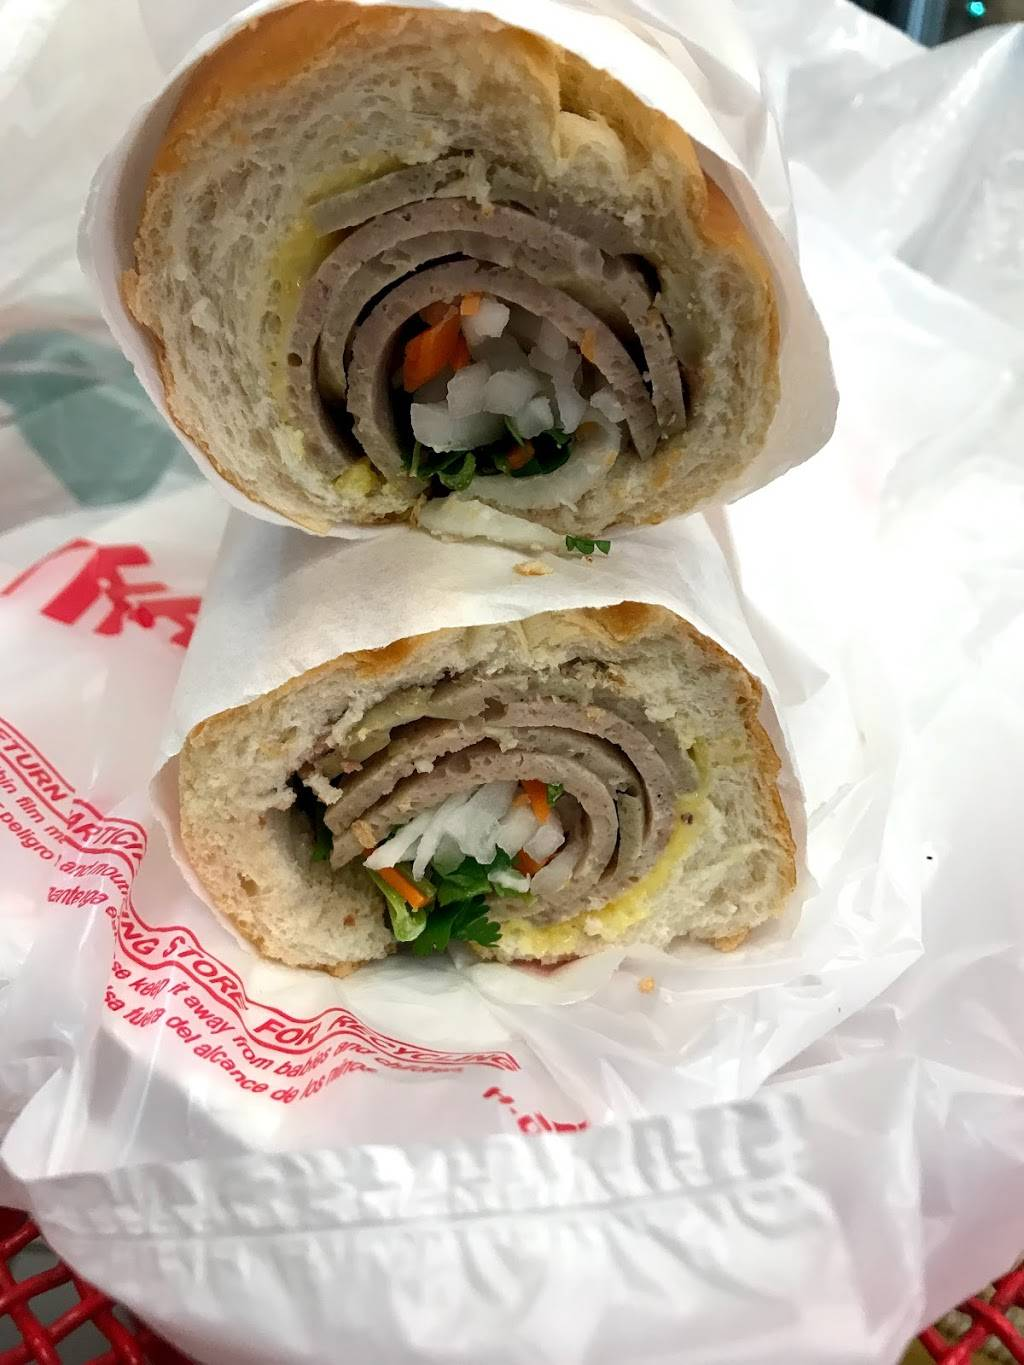 Ba Le Sandwiches | meal takeaway | 9152 Bolsa Ave, Westminster, CA 92683, USA | 7148919424 OR +1 714-891-9424